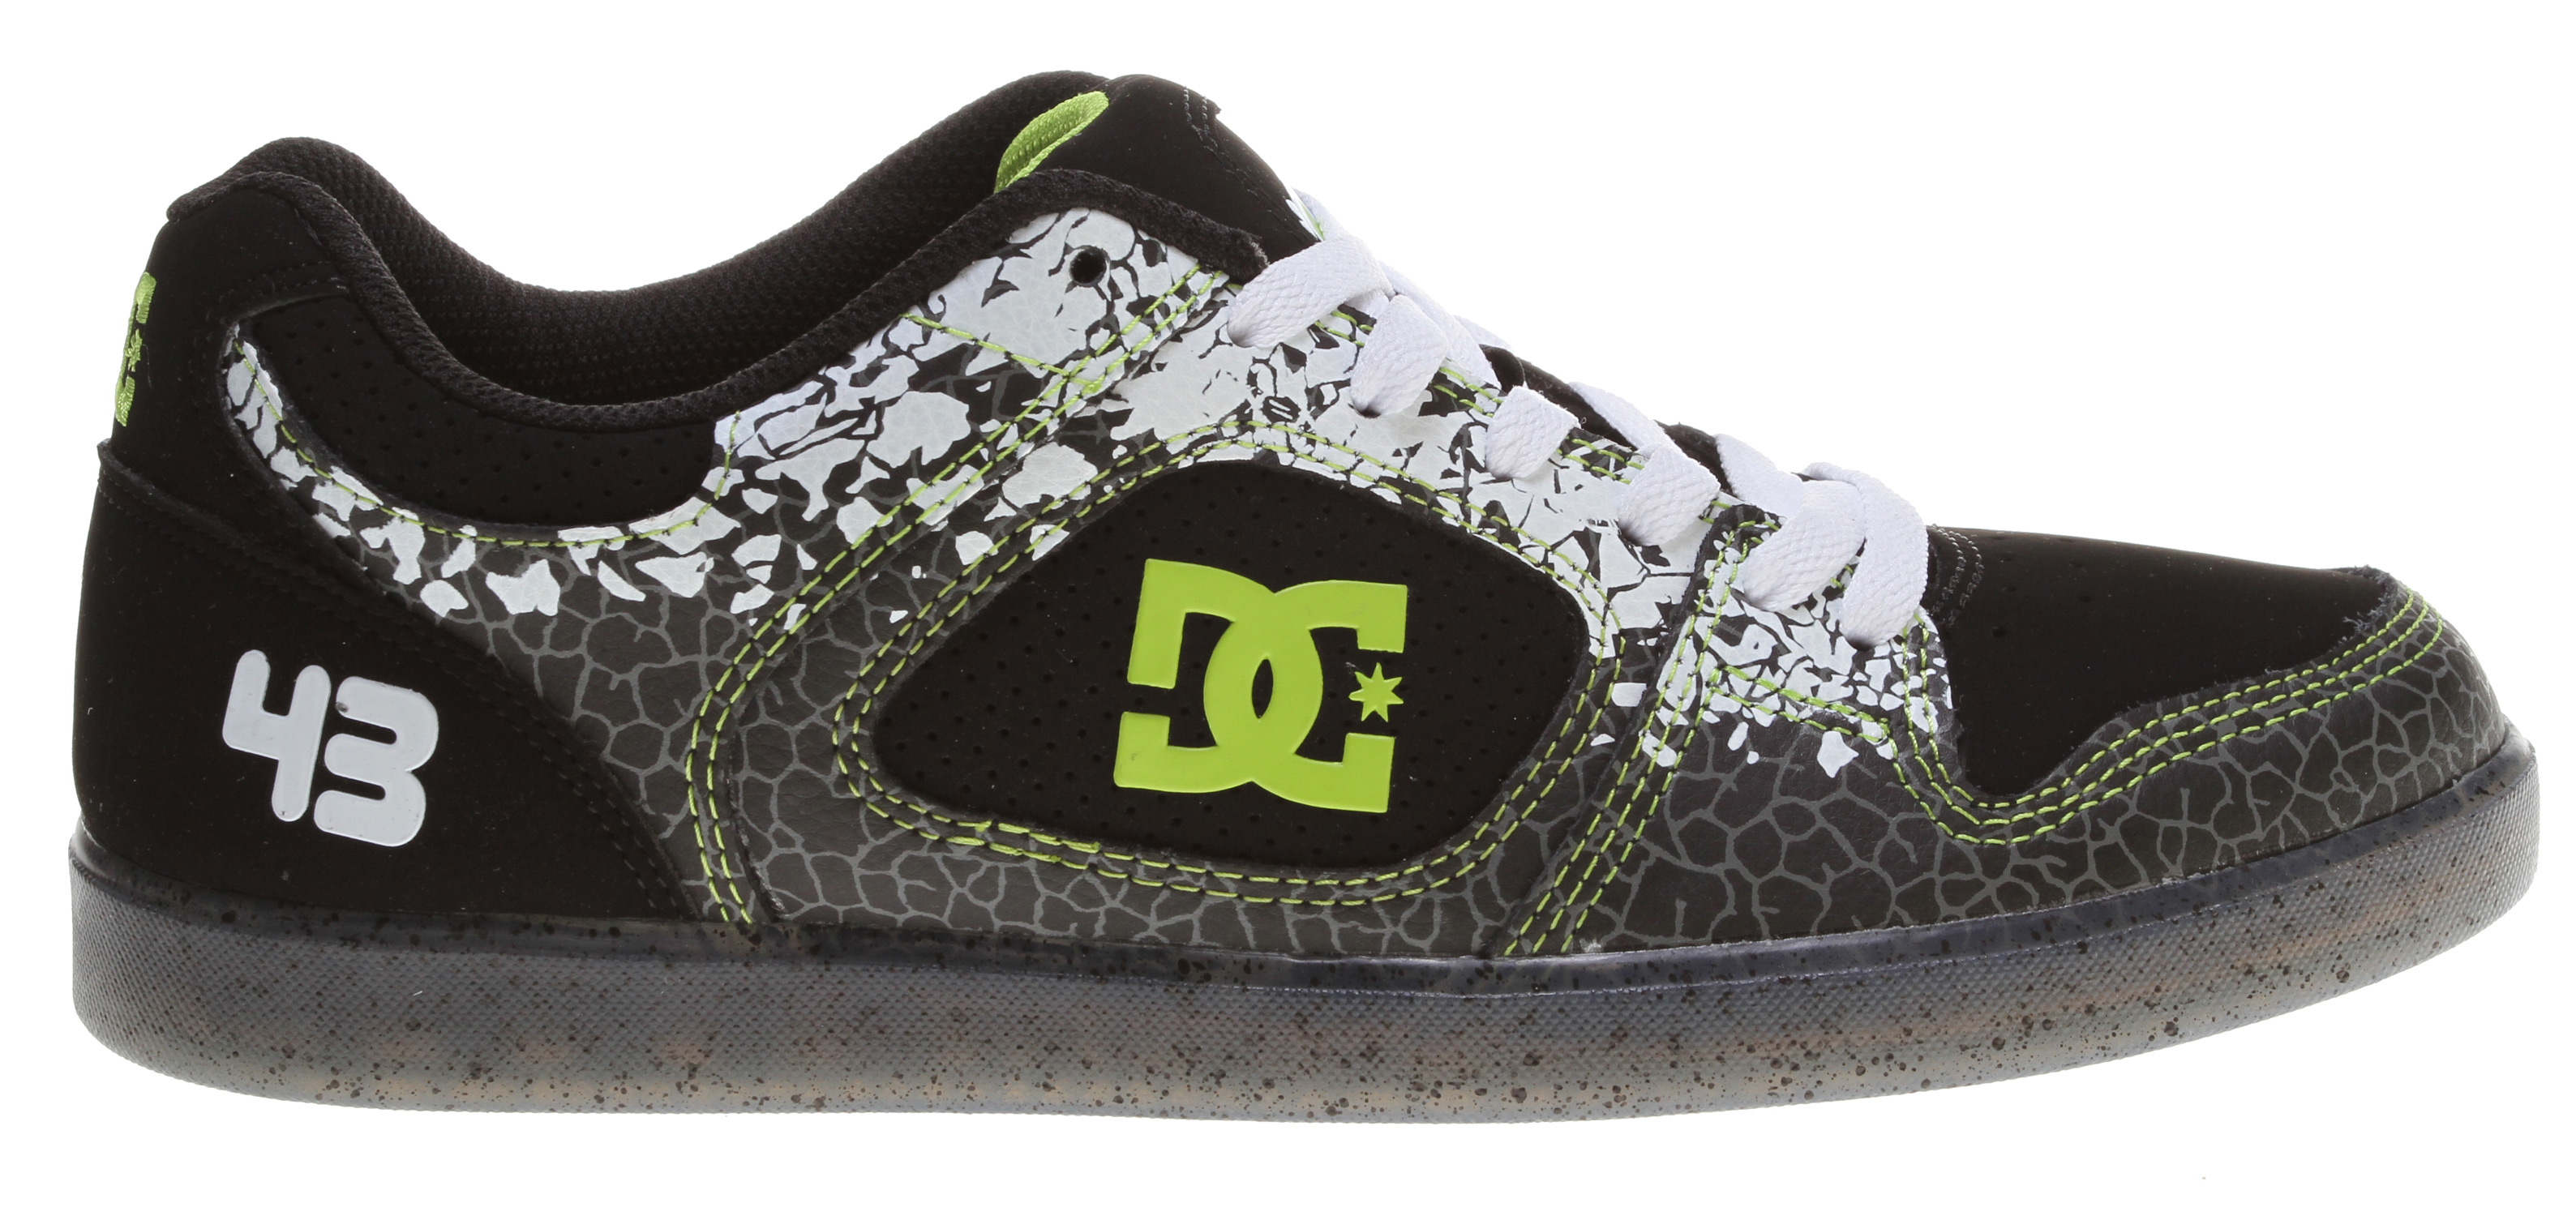 Skateboard Skate like the pros in the DC Shoes Union SE skate shoes from the Ken Block Collection.Key Features of the DC Ken Block Union SE Skate Shoes: Uppers of tough suede, smooth leather, and hits of mesh. Padded tongue and collar for comfort and support. Breathable textile-fabric lining with contrasting print. Cushioned footbed for lasting comfort. Lightweight cupsole construction is extremely durable. Clear rubber outsole. - $52.95